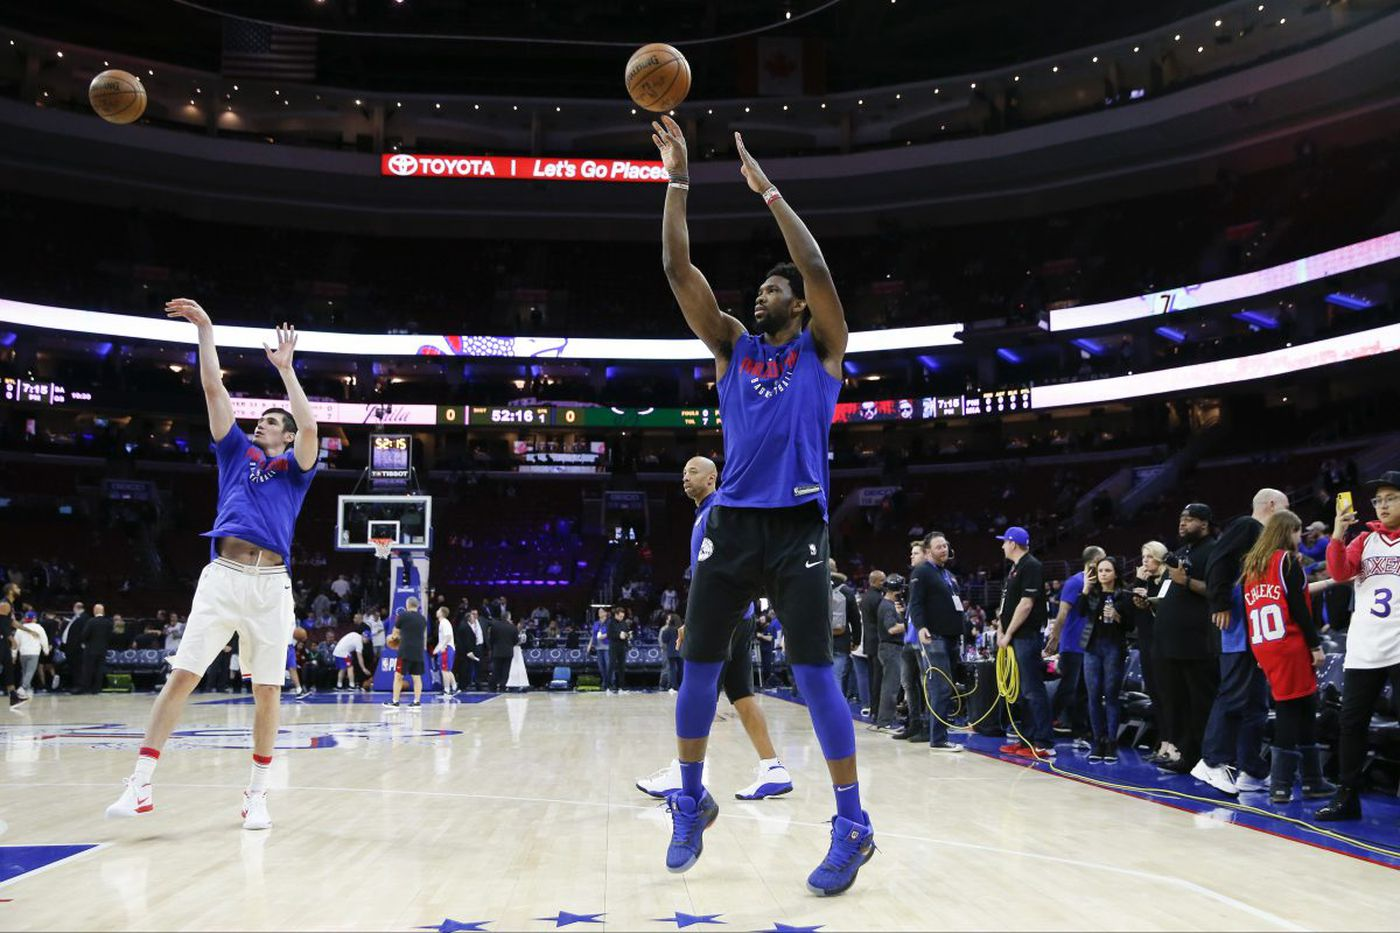 No word on Joel Embiid's status for Game 3